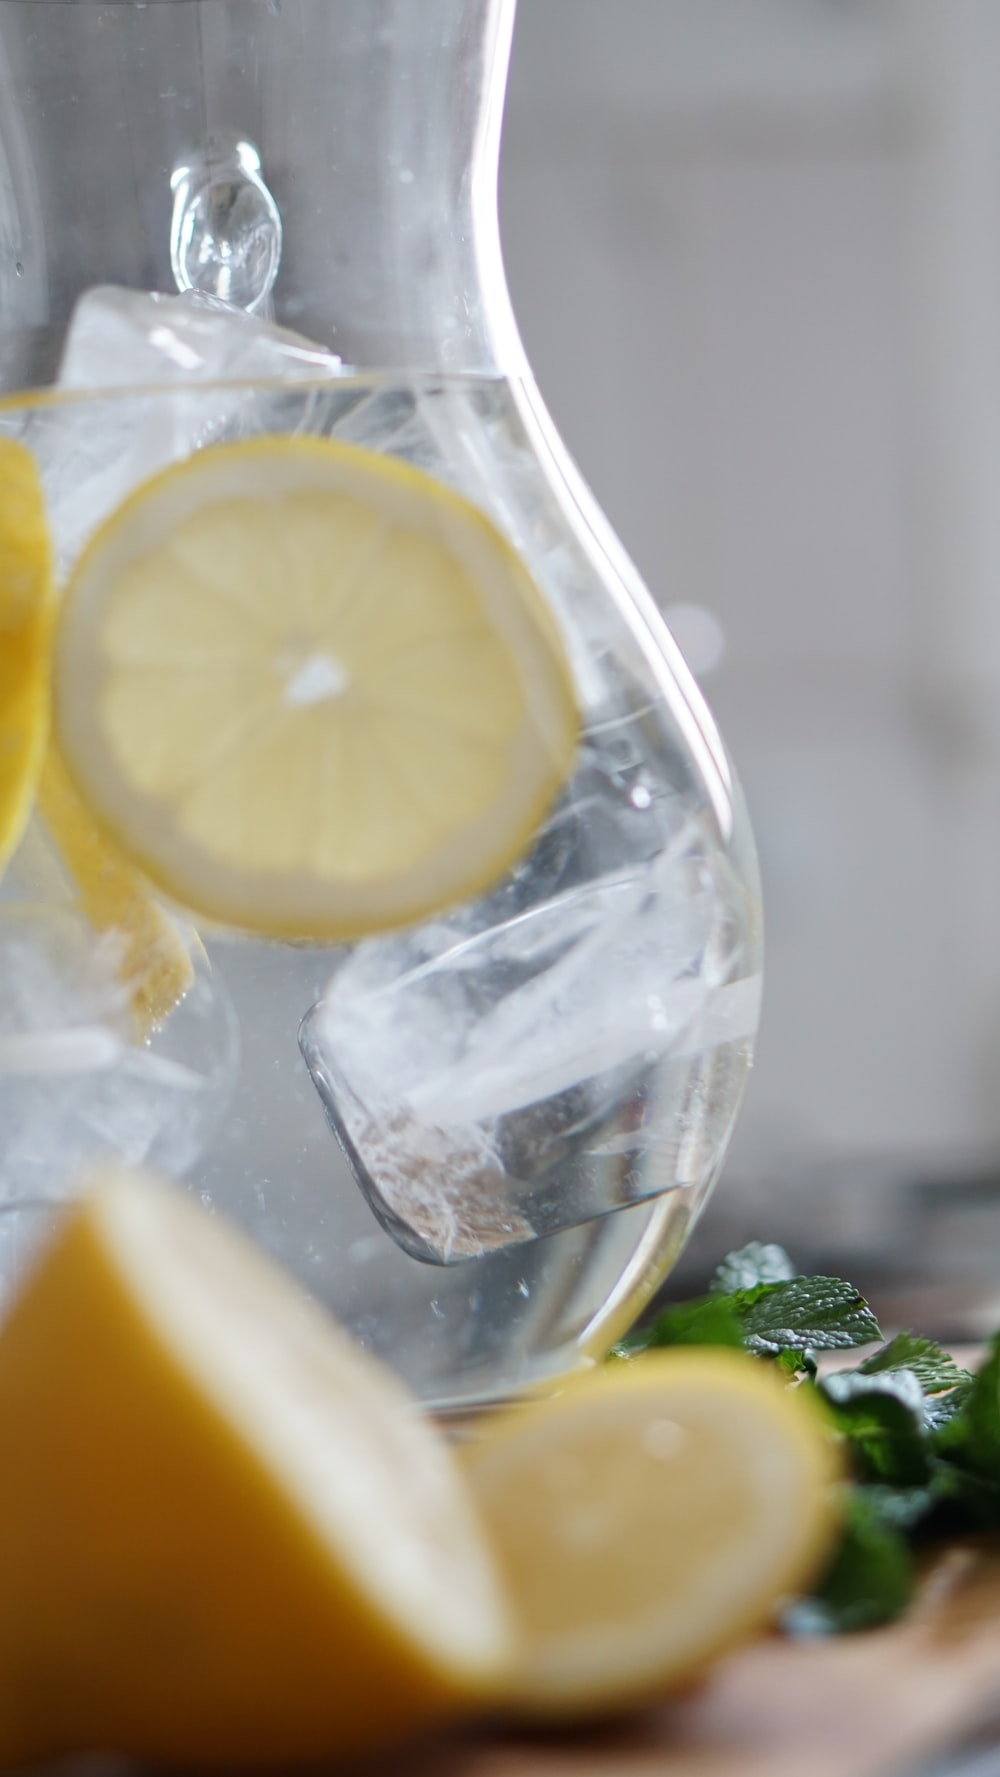 sliced lemon inside pitcher with ice cubes